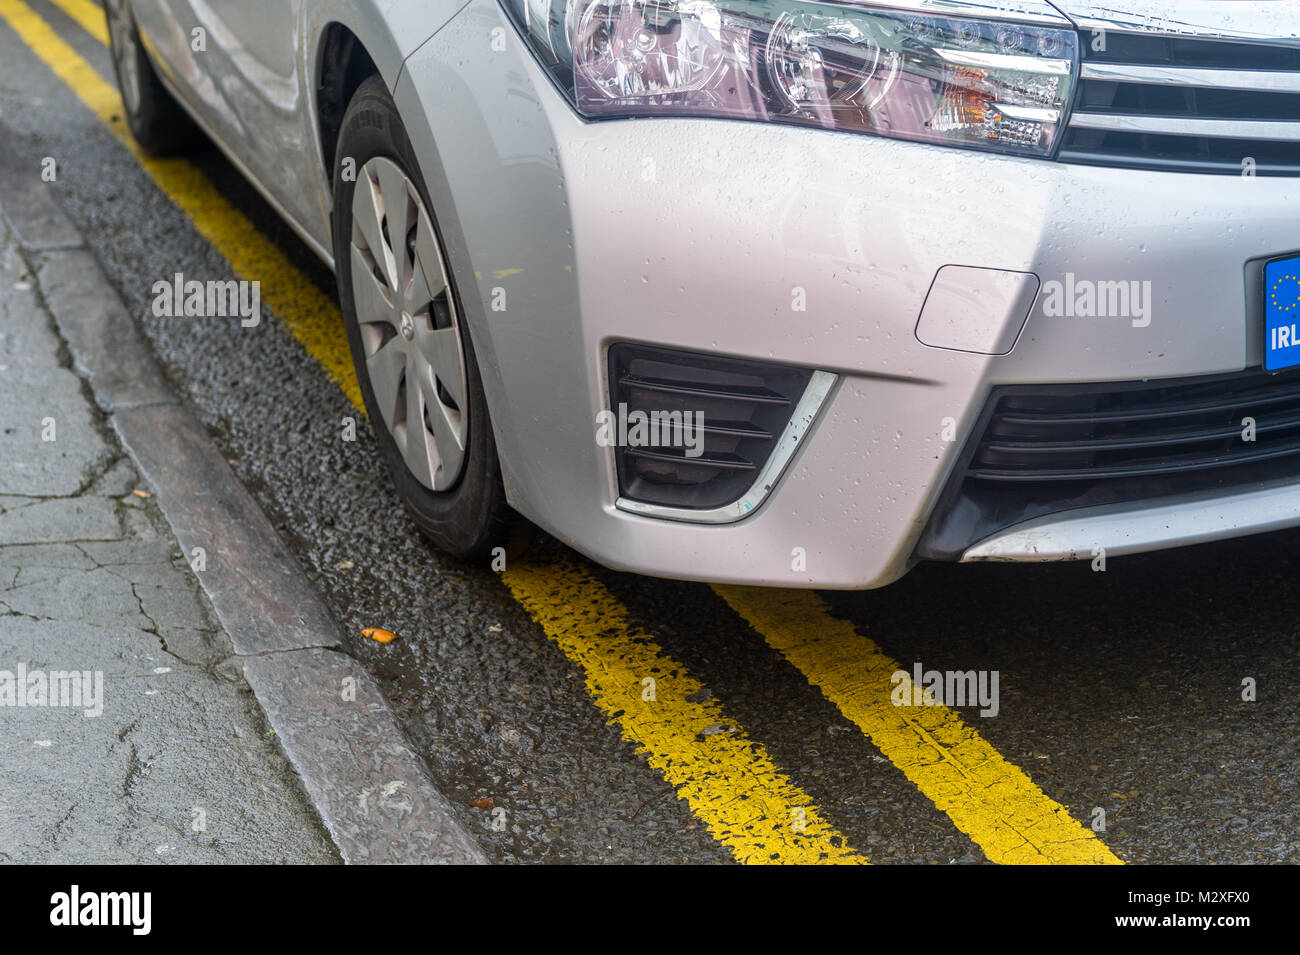 Car parked on double yellow lines/parking violation in Skibbereen, County Cork, Ireland - Stock Image